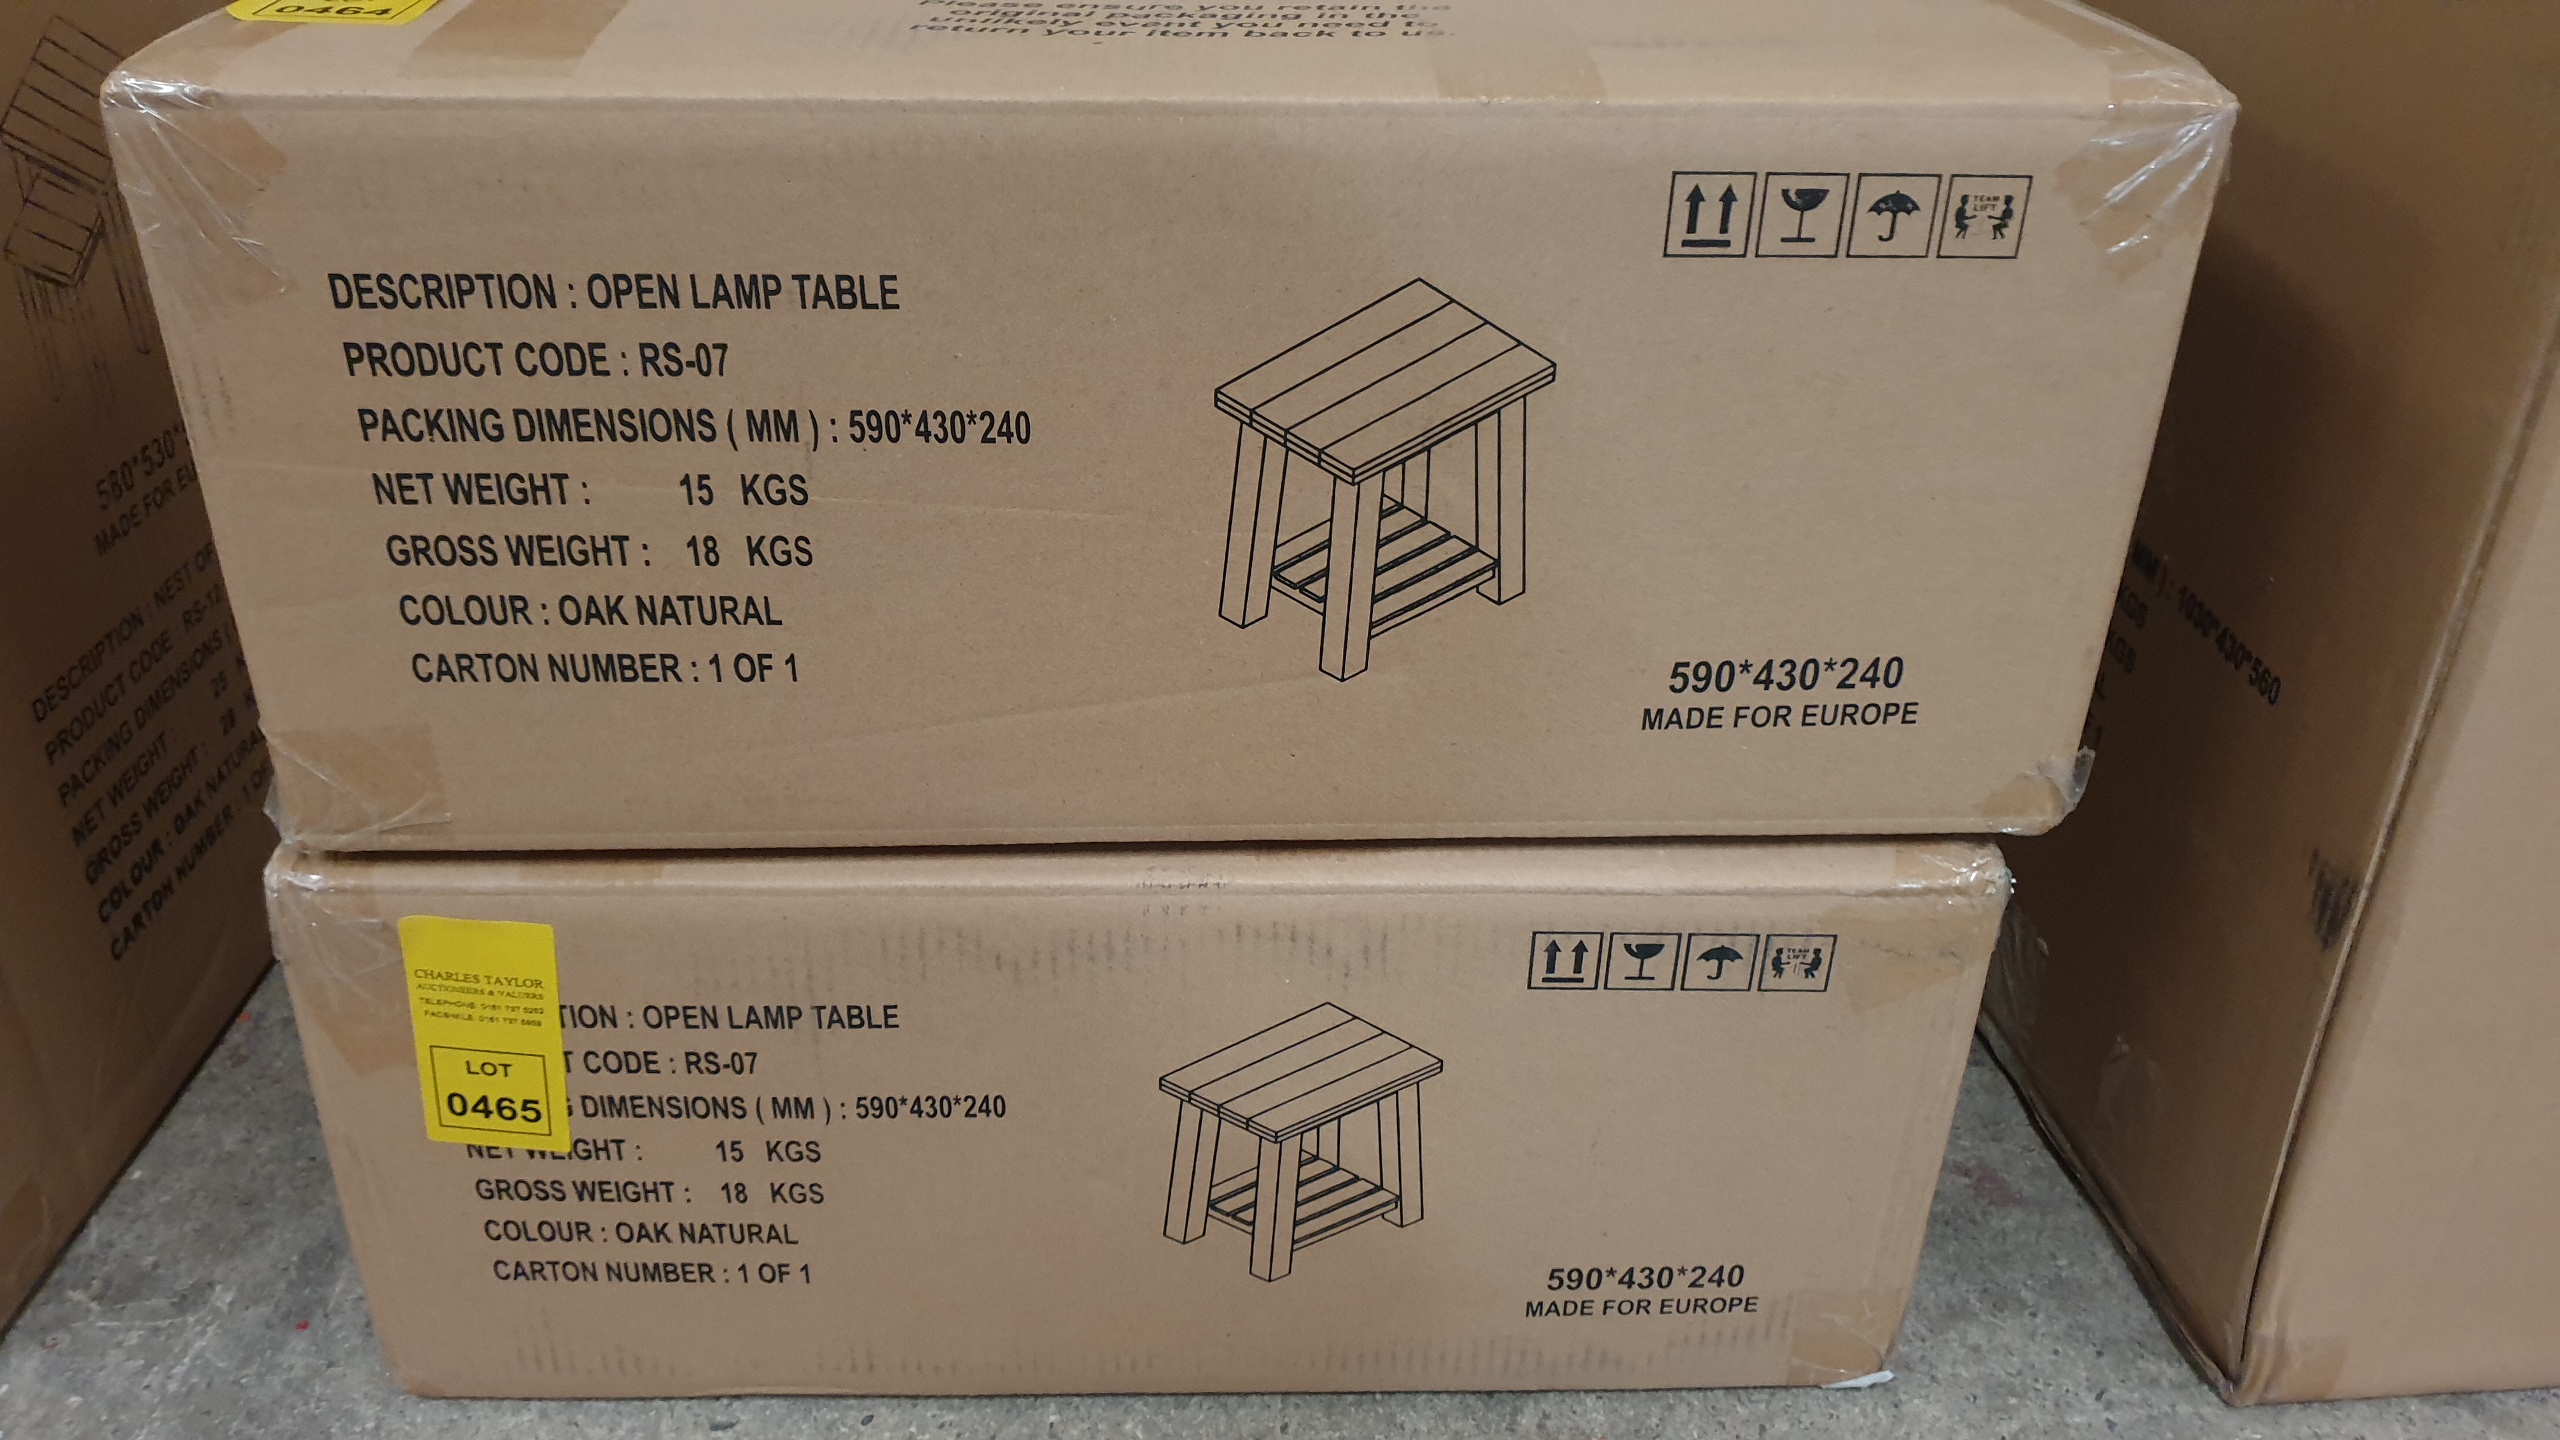 Lote 465 - BRAND NEW BOXED OPEN LAMP TABLE